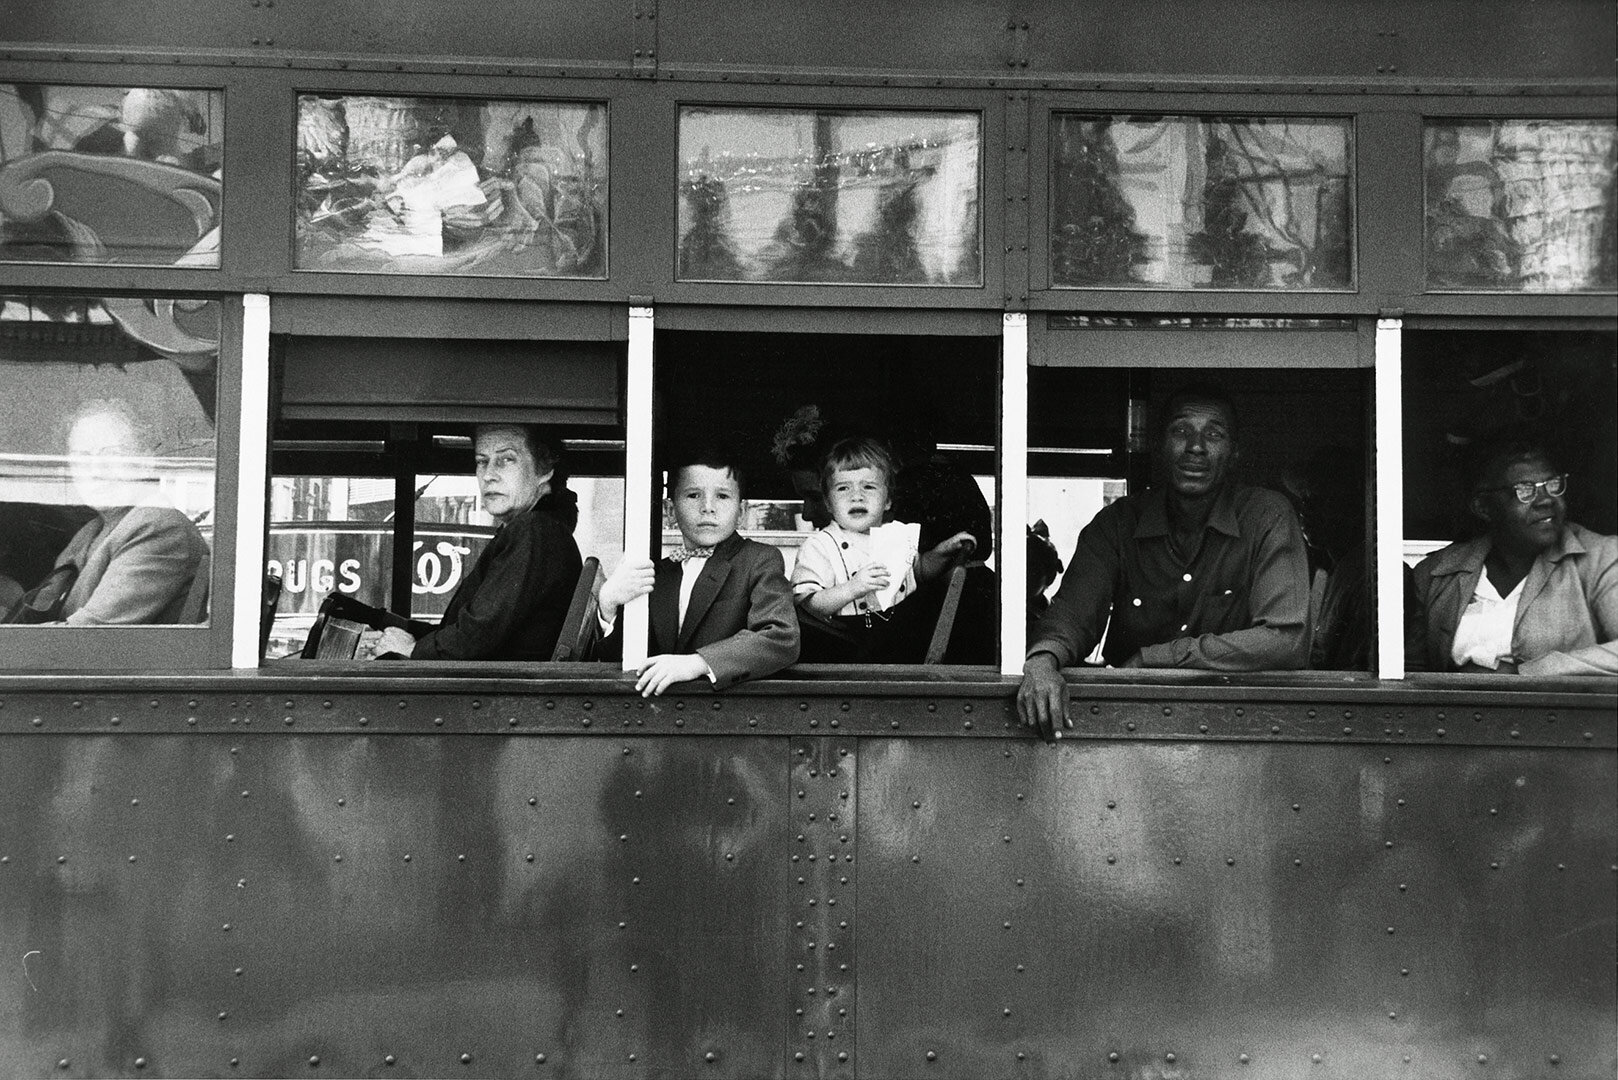 time-100-influential-photos-robert-frank-trolley-new-orleans-44.jpg